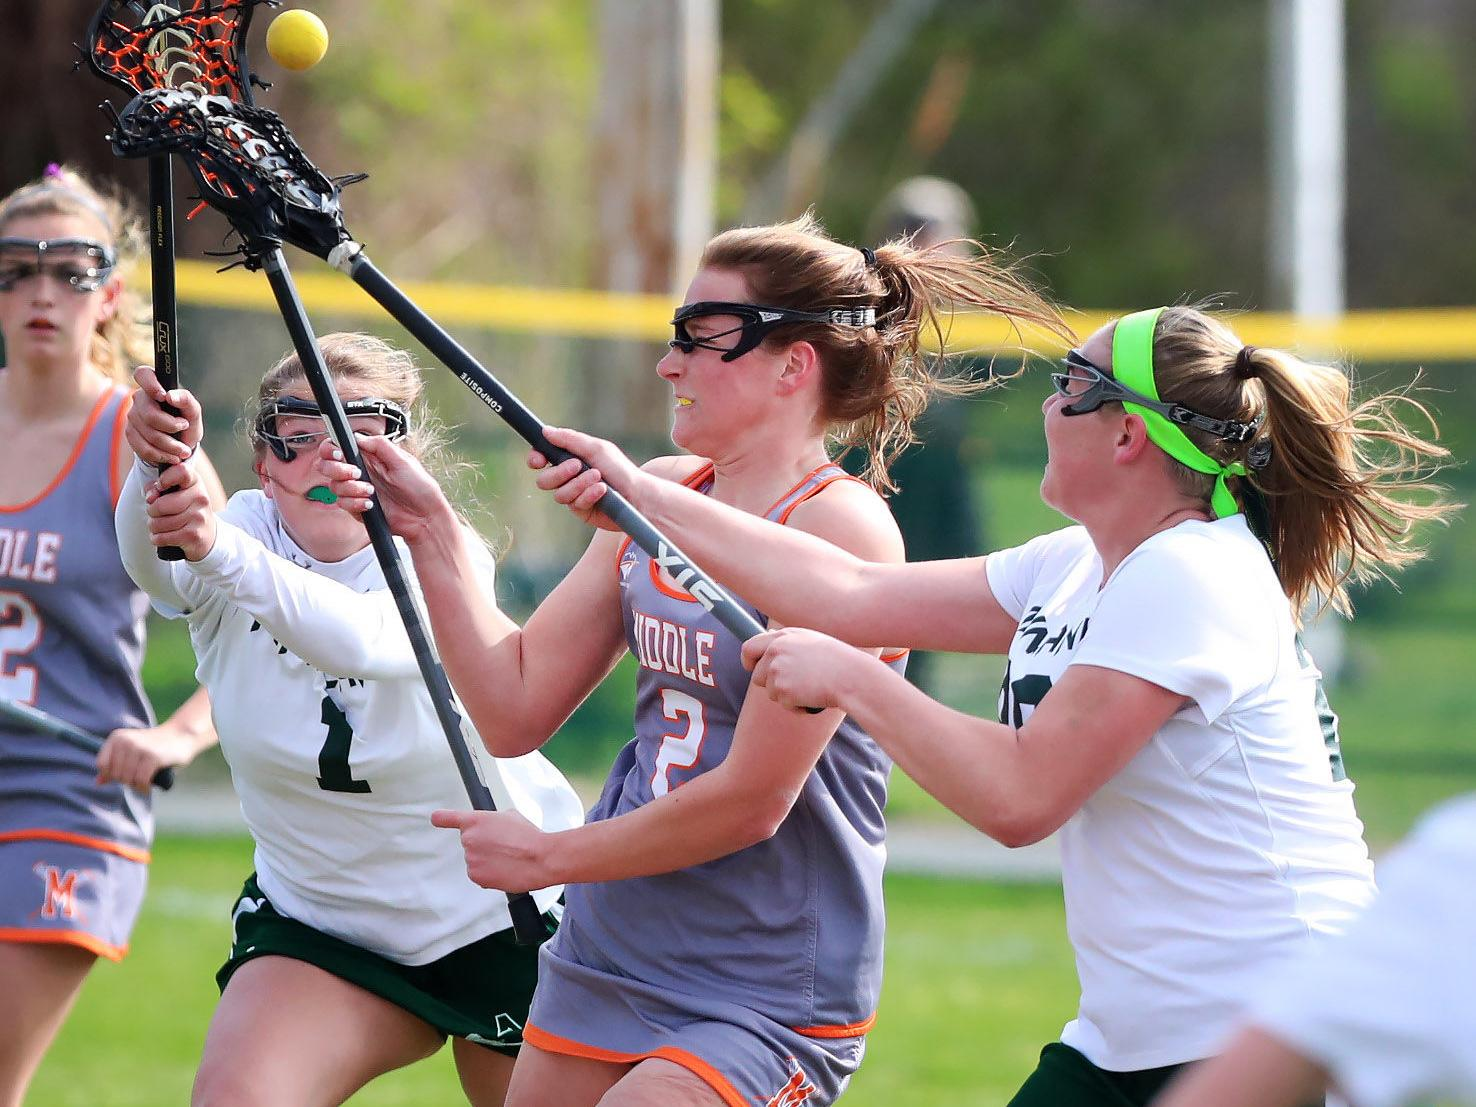 Versatile Middle Township junior Kira Sides at her best in lacrosse season: My Life